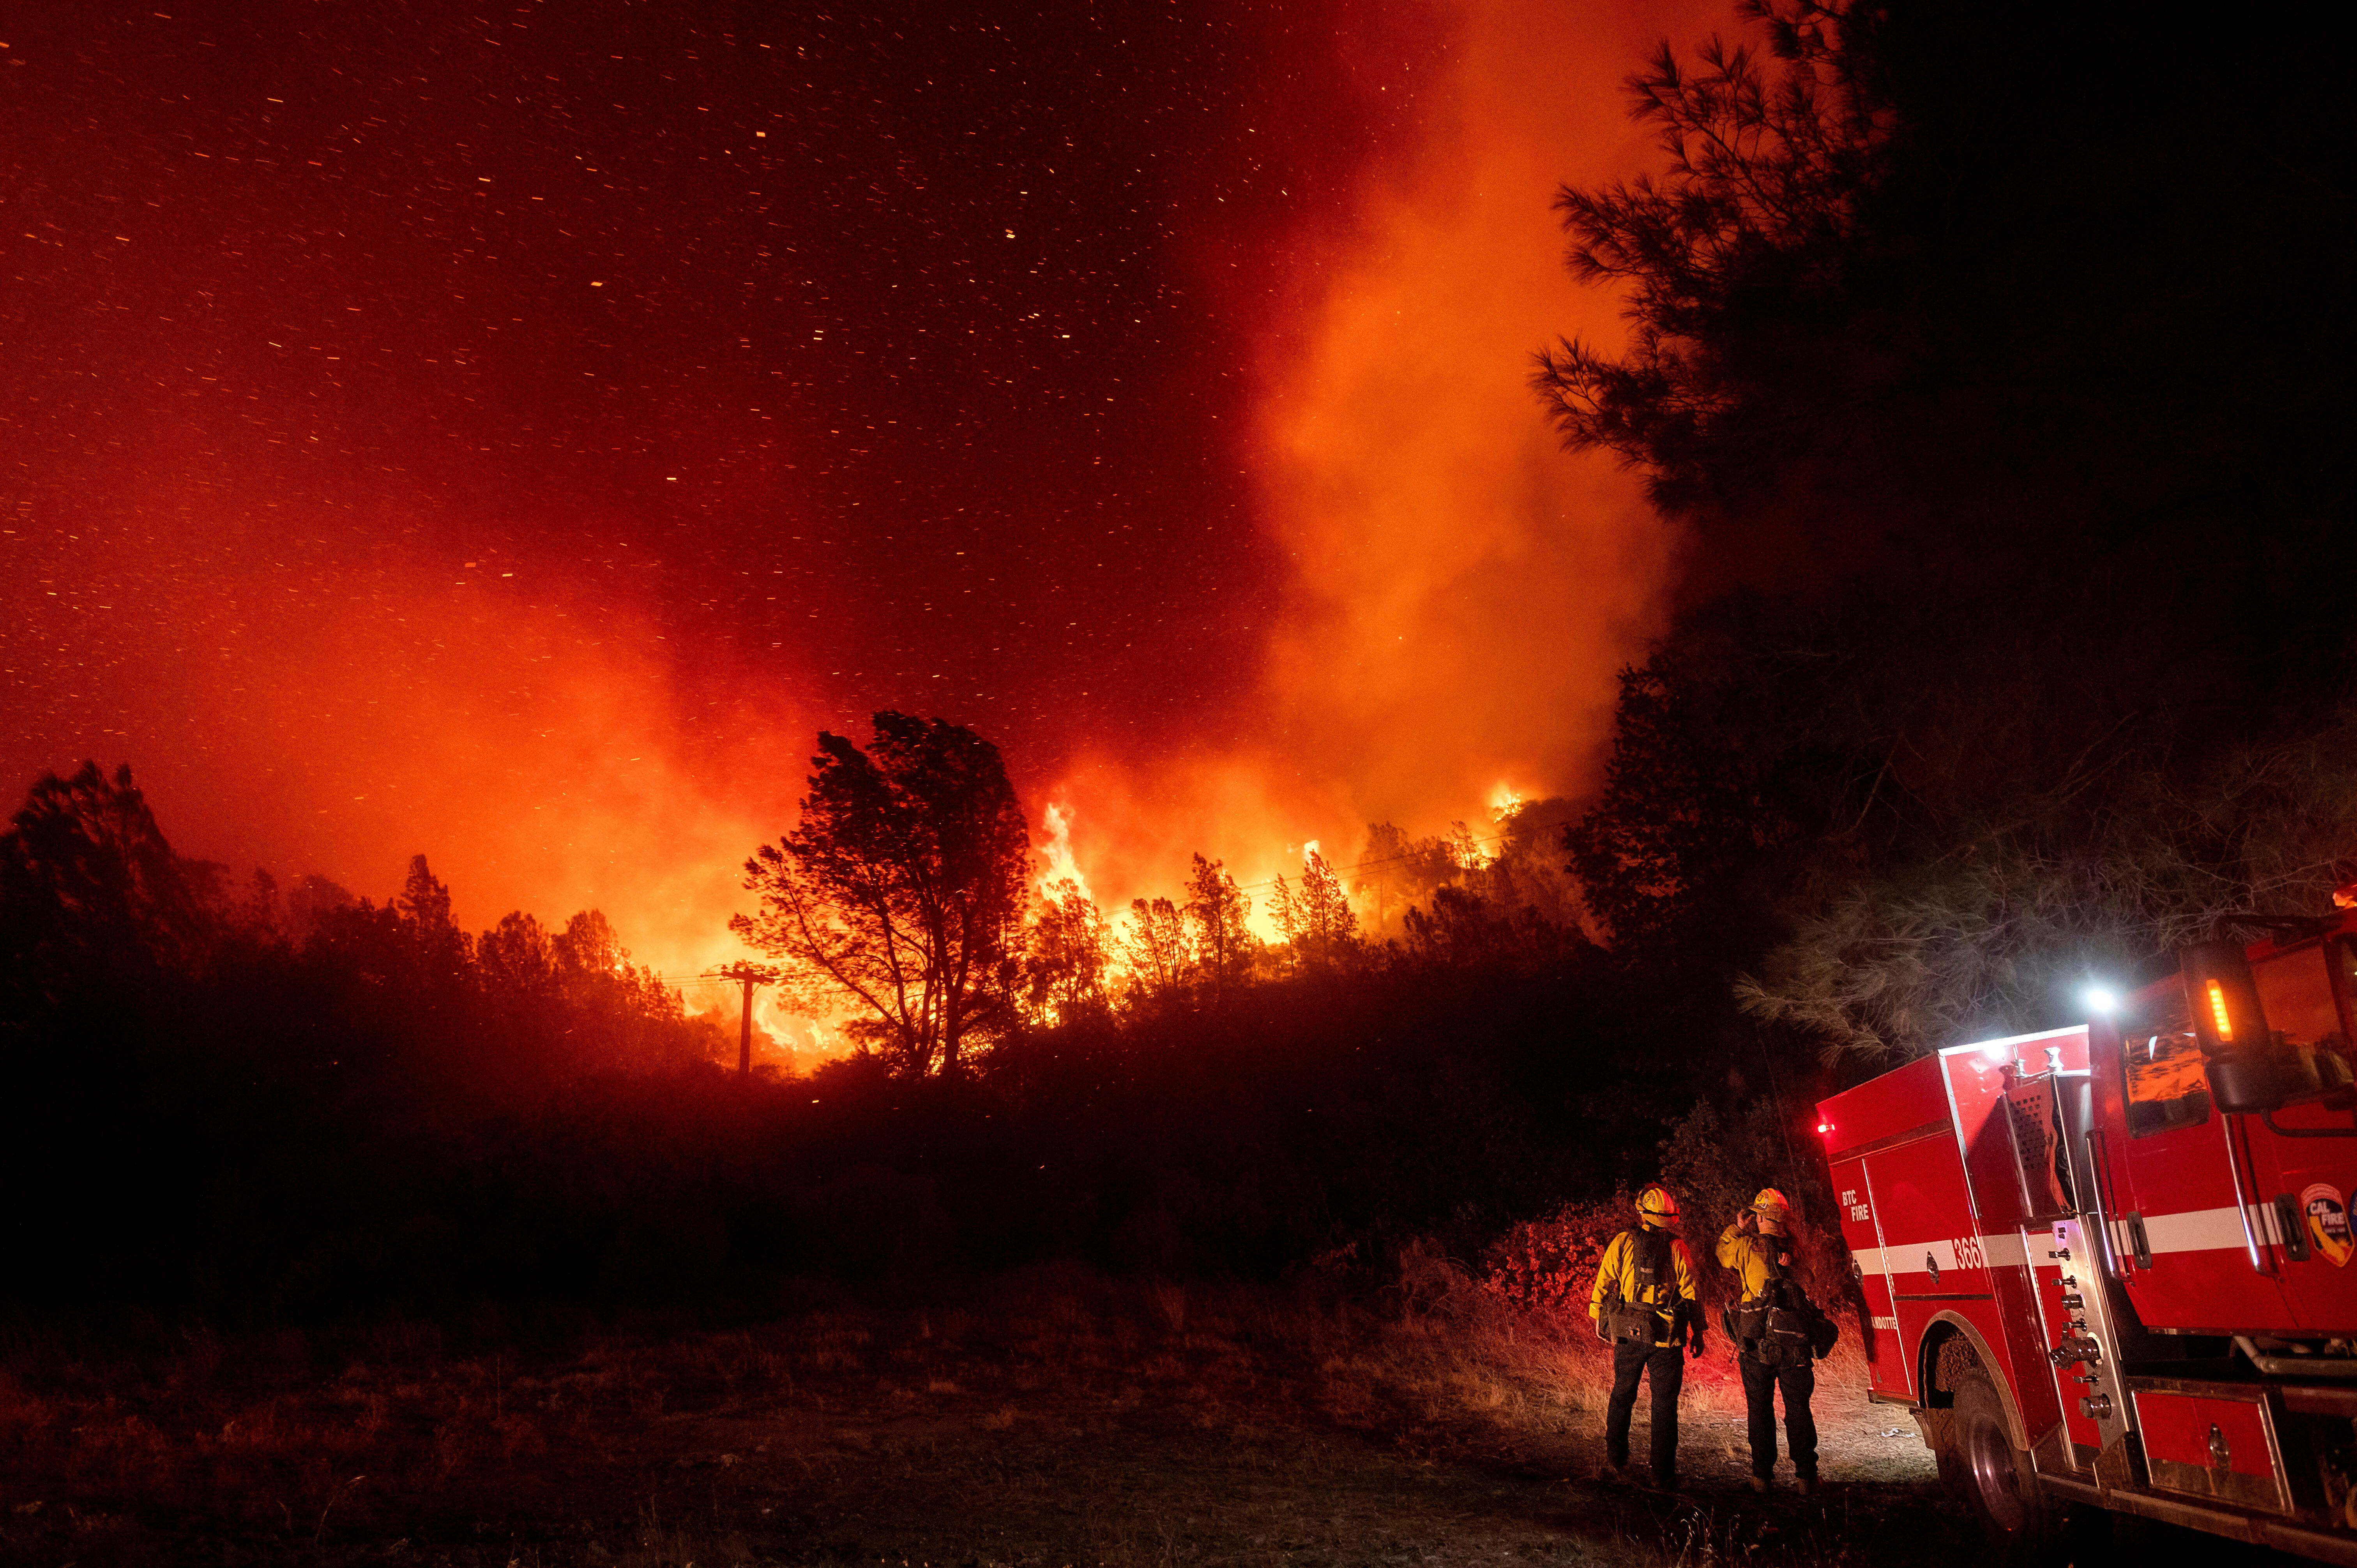 Firefighters watch the Bear Fire approach in Oroville, California on Wednesday. The blaze, part of the lightning-sparked Nort